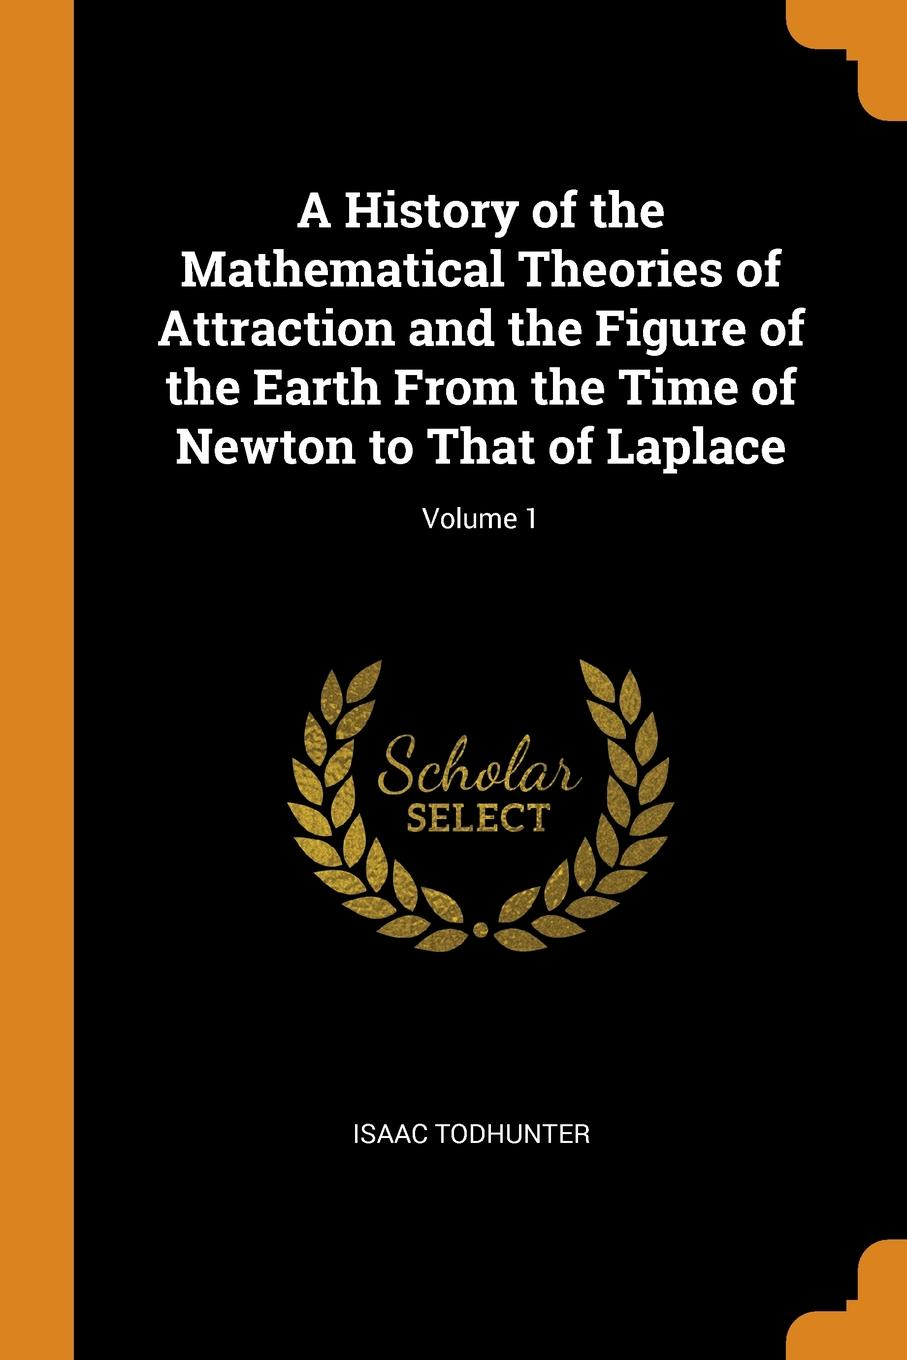 Isaac Todhunter A History of the Mathematical Theories of Attraction and the Figure of the Earth From the Time of Newton to That of Laplace; Volume 1